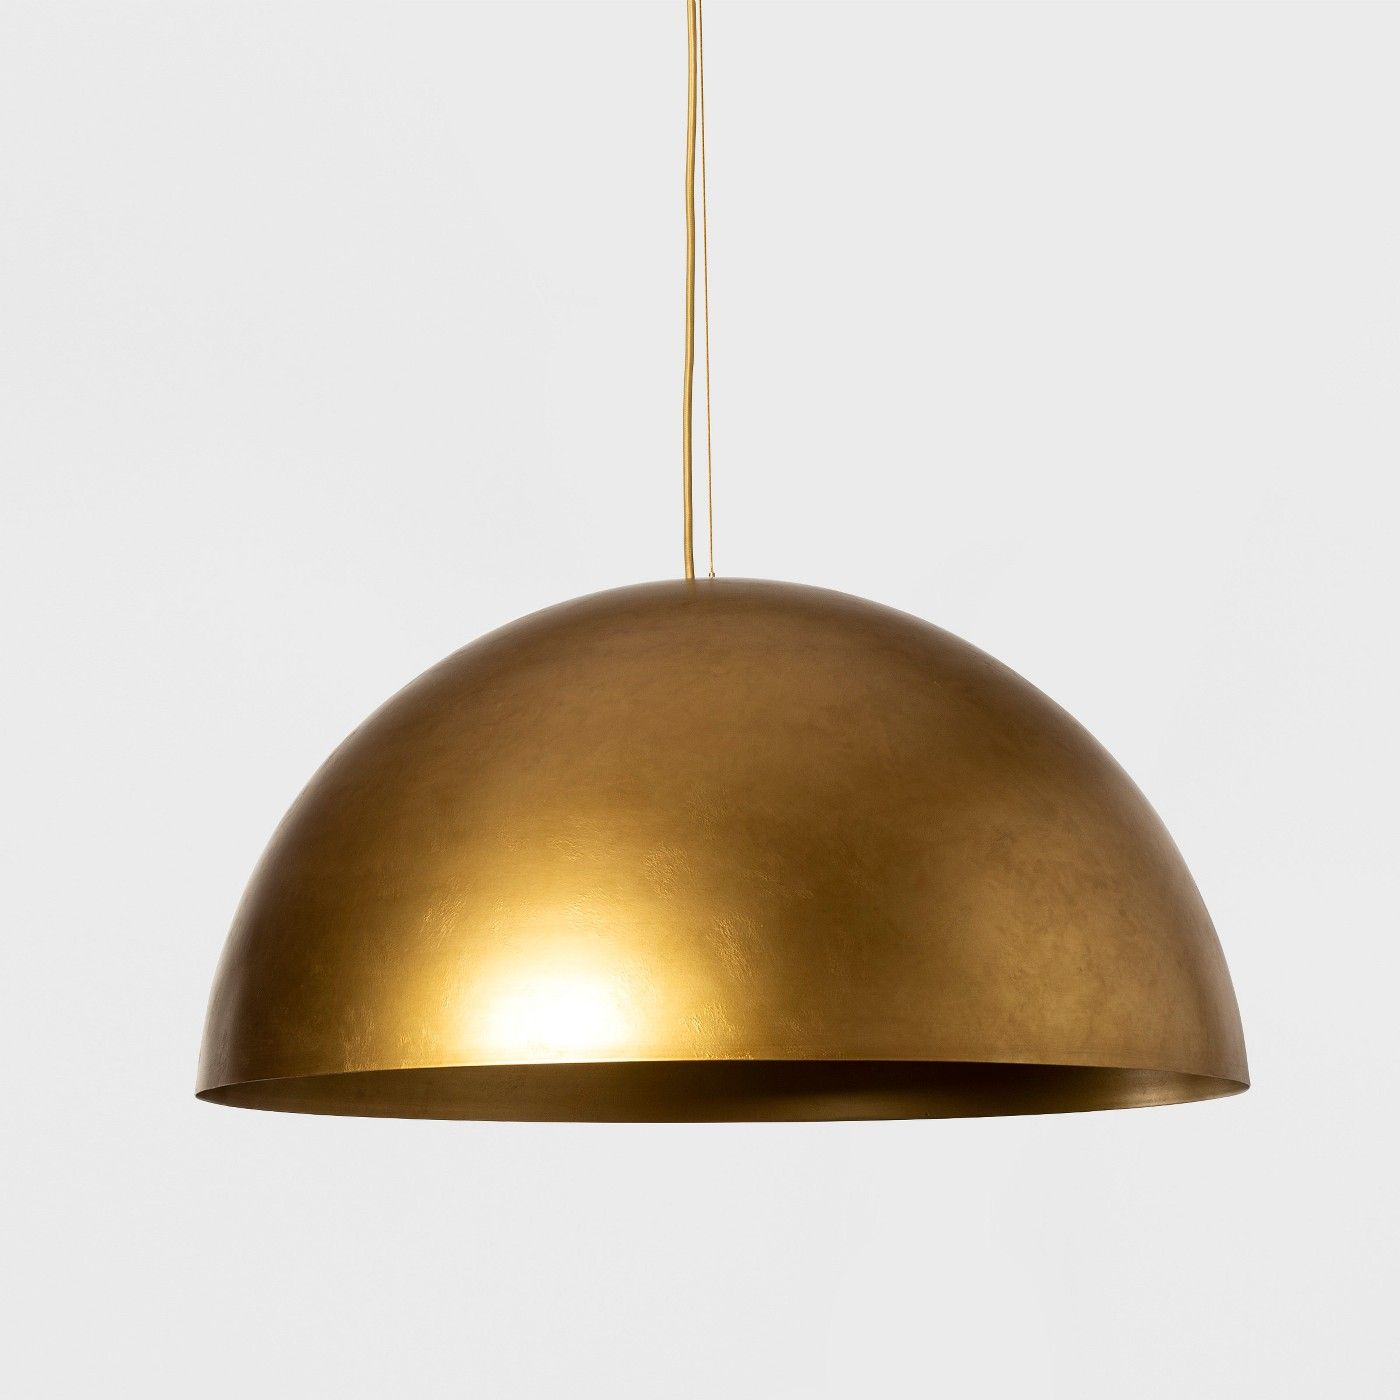 Metal Dome Extra Large Pendant Lamp Gold Includes Energy Efficient Light Bulb Project Dome Pendant Lighting Pendant Lighting Dining Room Large Pendant Lamp Extra large pendant lighting